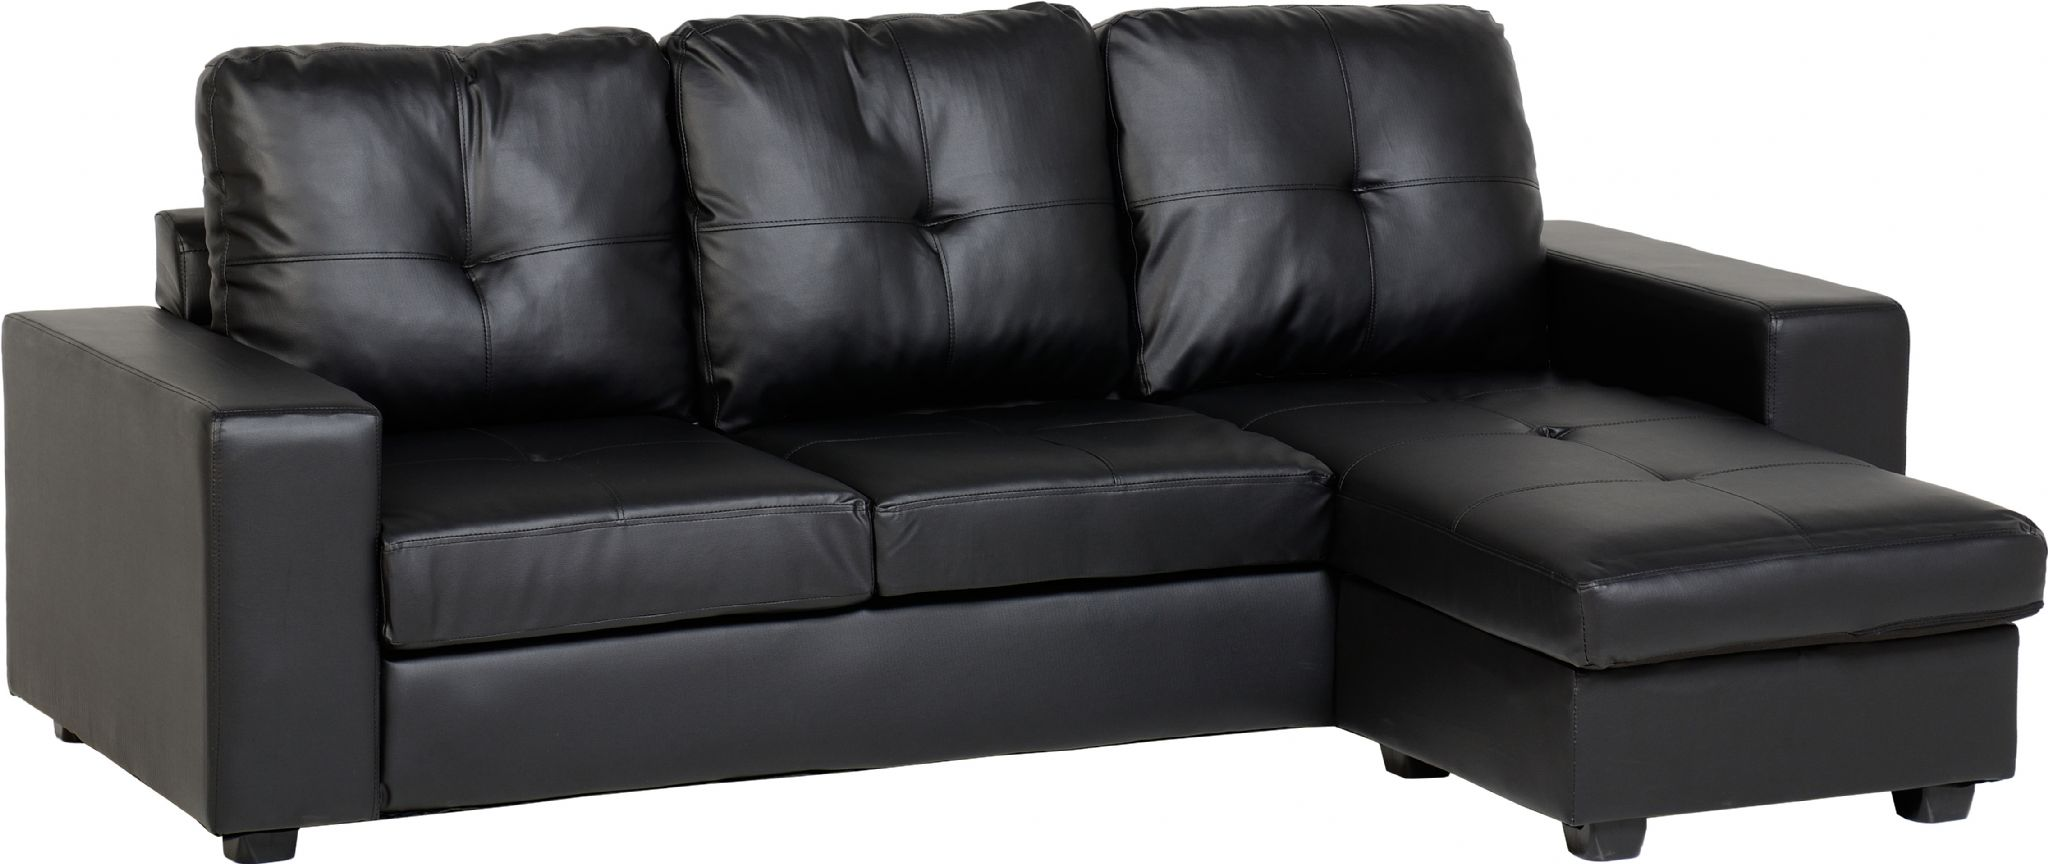 Amazing Benson Black Leather Corner Sofa black faux leather corner sofa